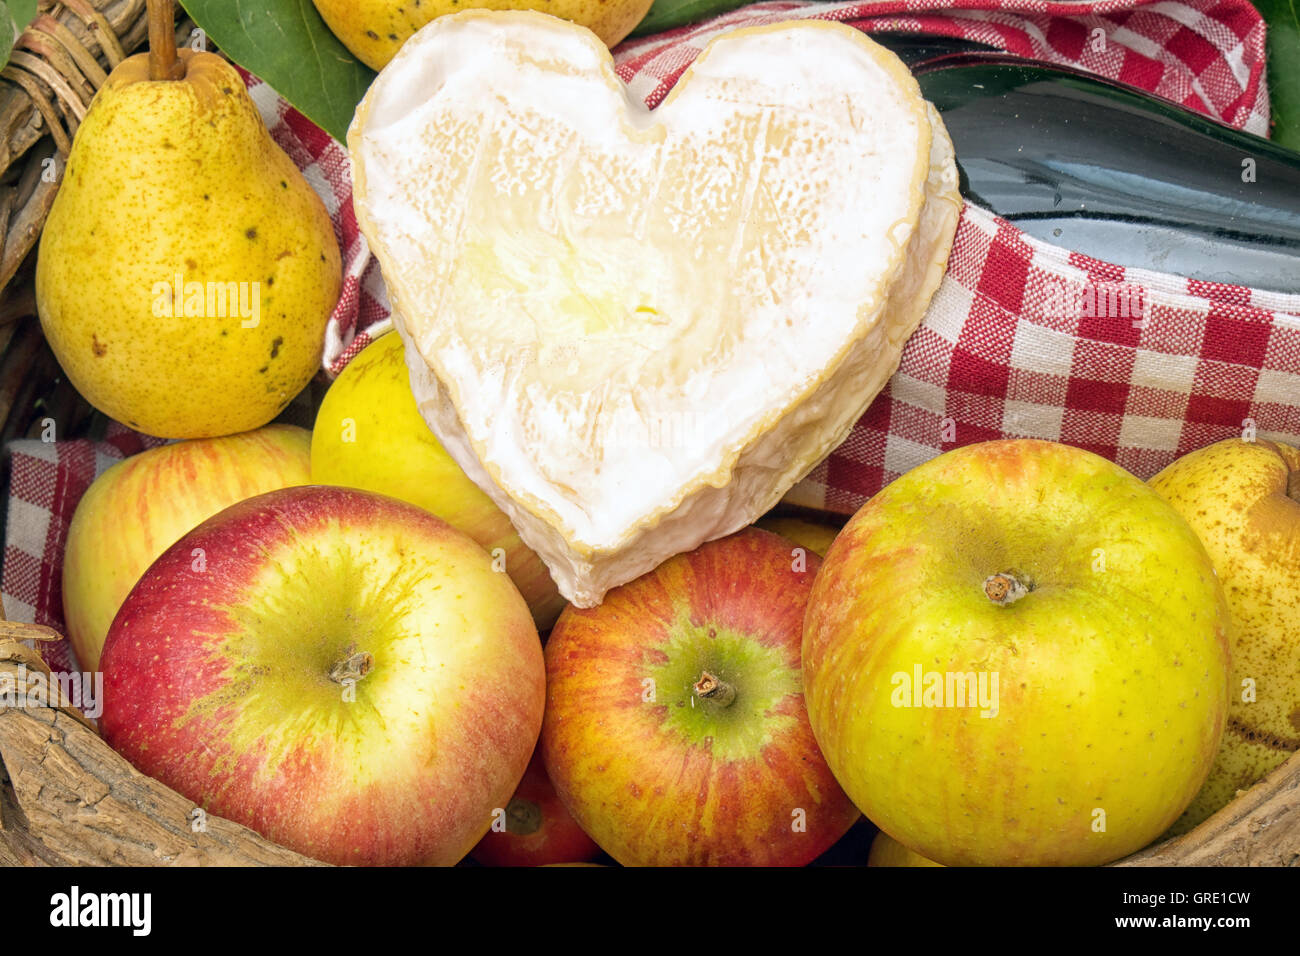 a Neufchatel cheese with Normandy apples - Stock Image